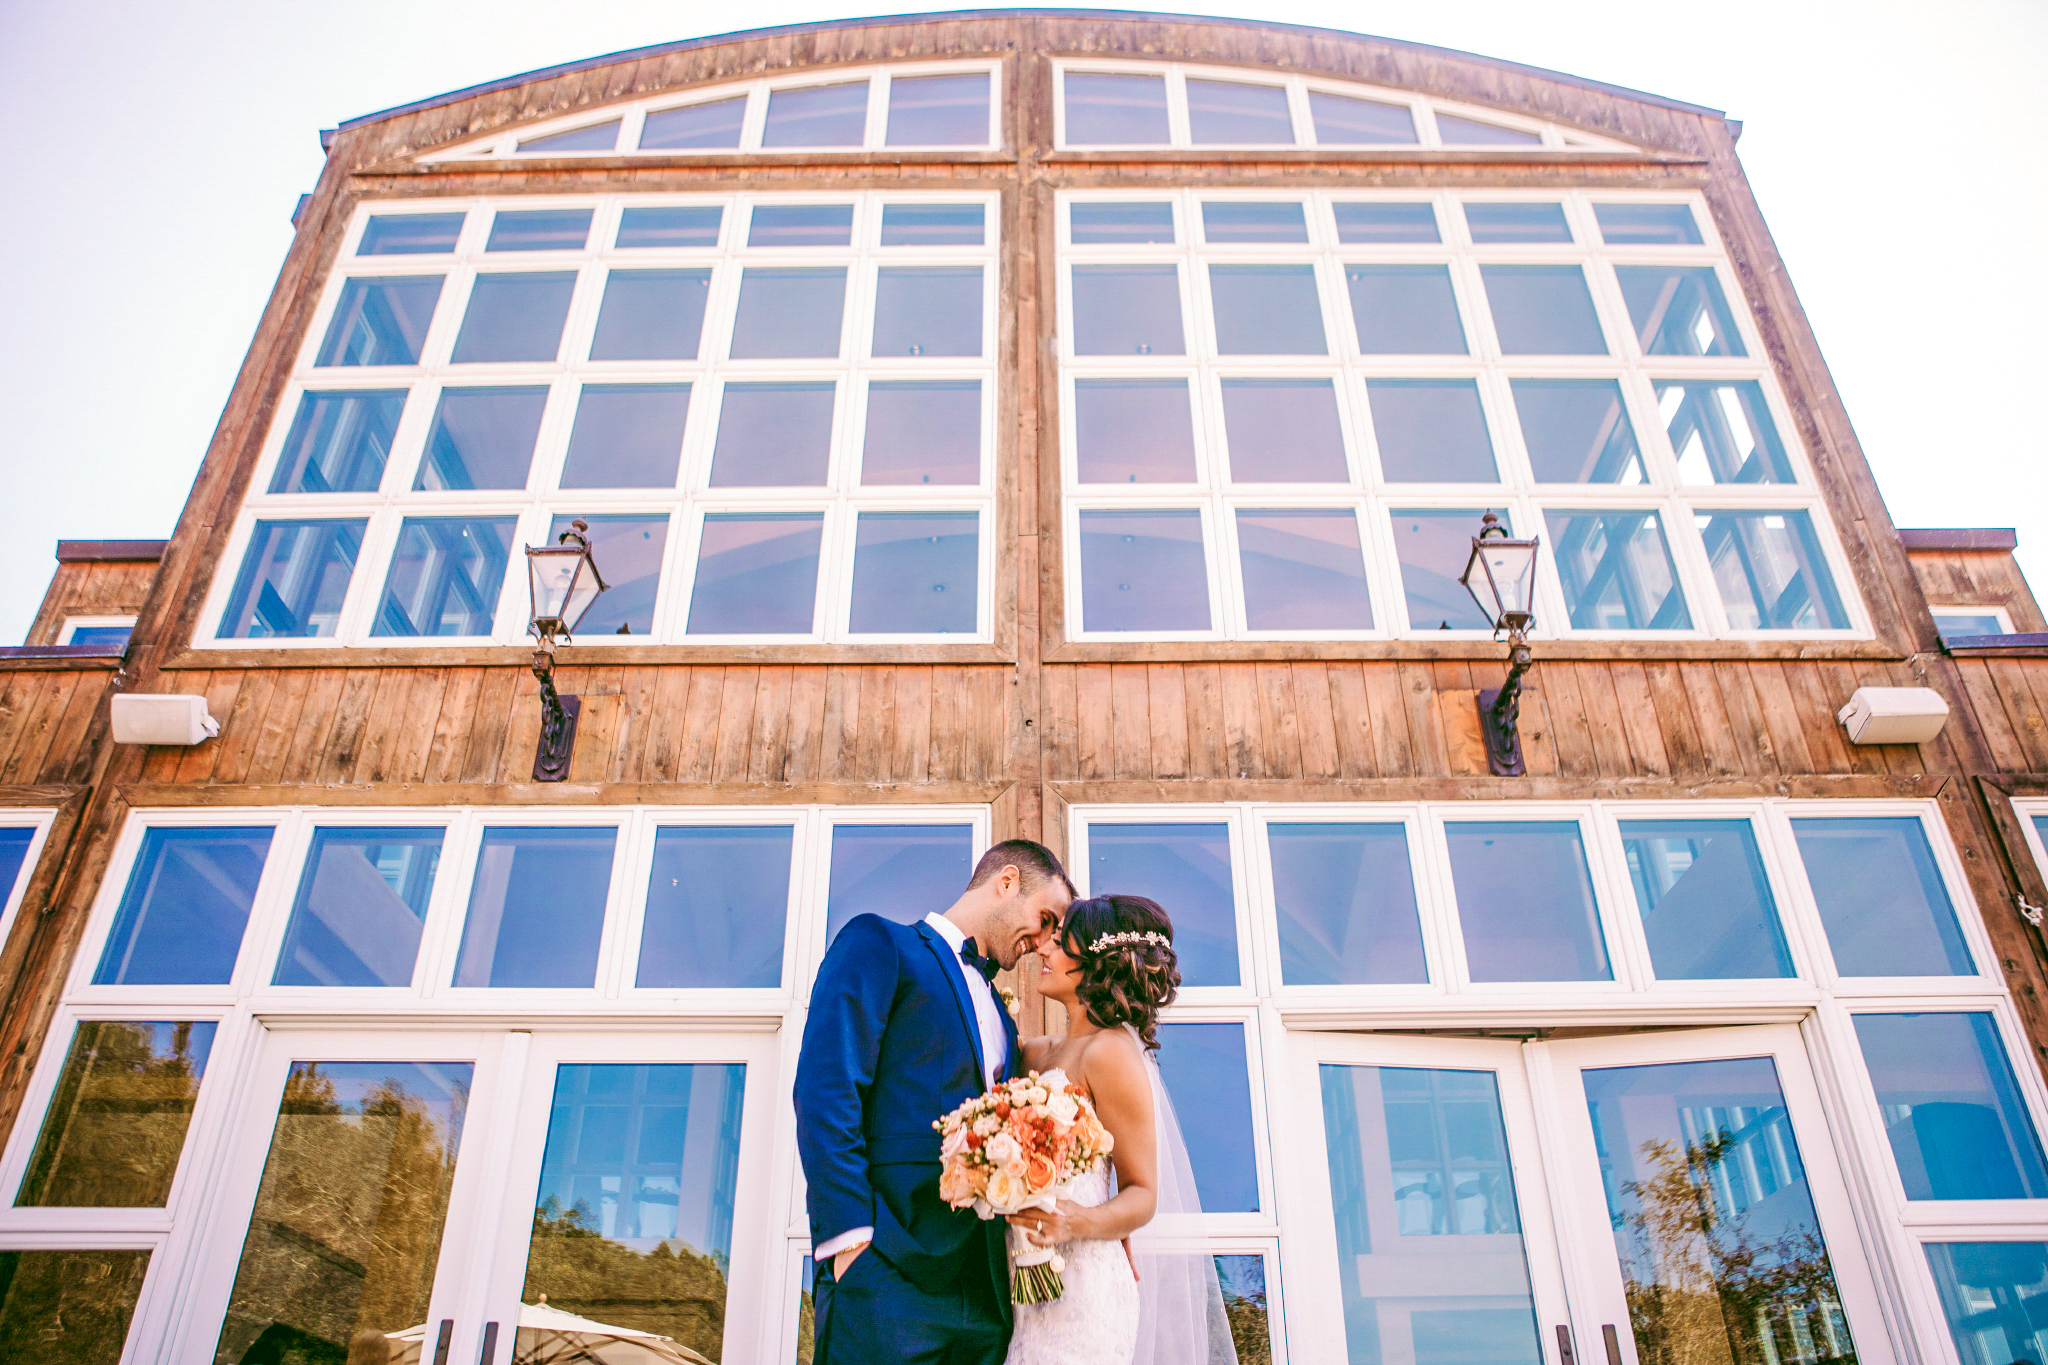 san diego wedding   photographer | couple about to kiss with woman holding bouquet of flowers in   front of building with glass windows